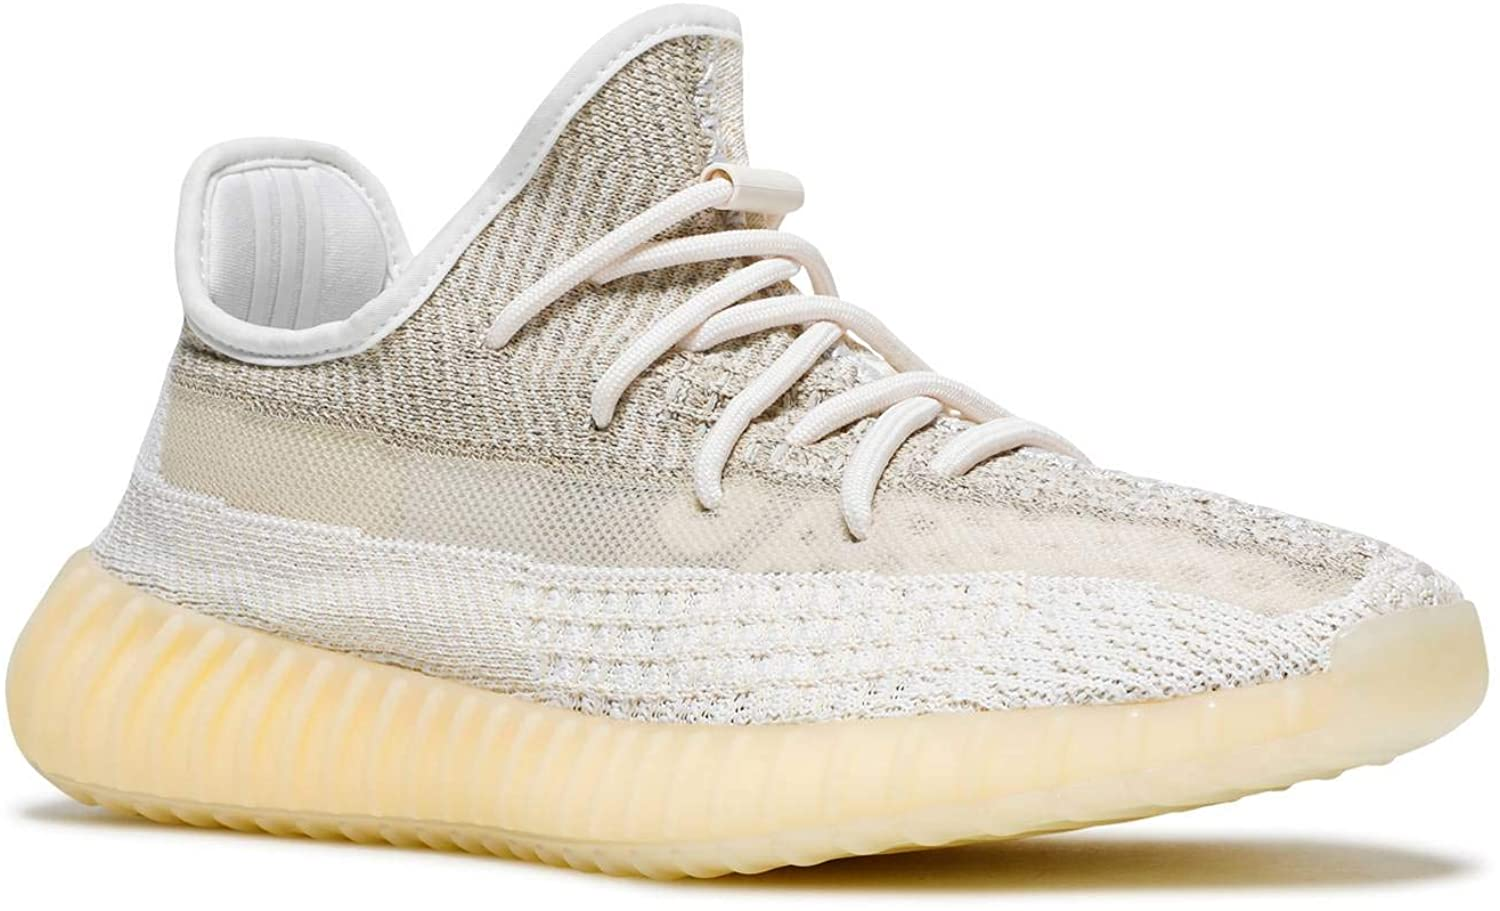 adidas Yeezy Boost 350 V2 Natural - Fz5426 - Size 5.5